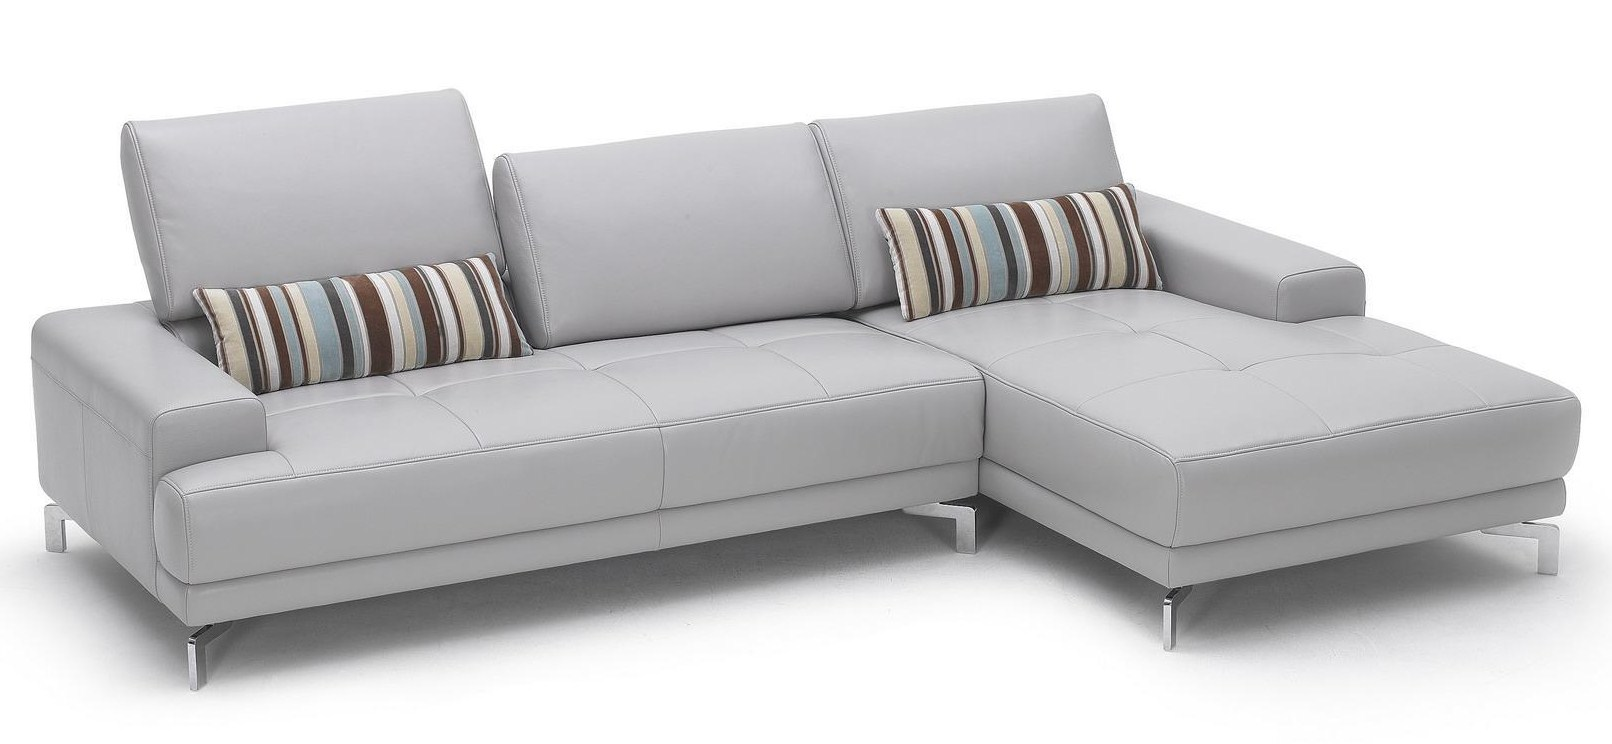 Modern sofa white 1329 1 new york New couch designs